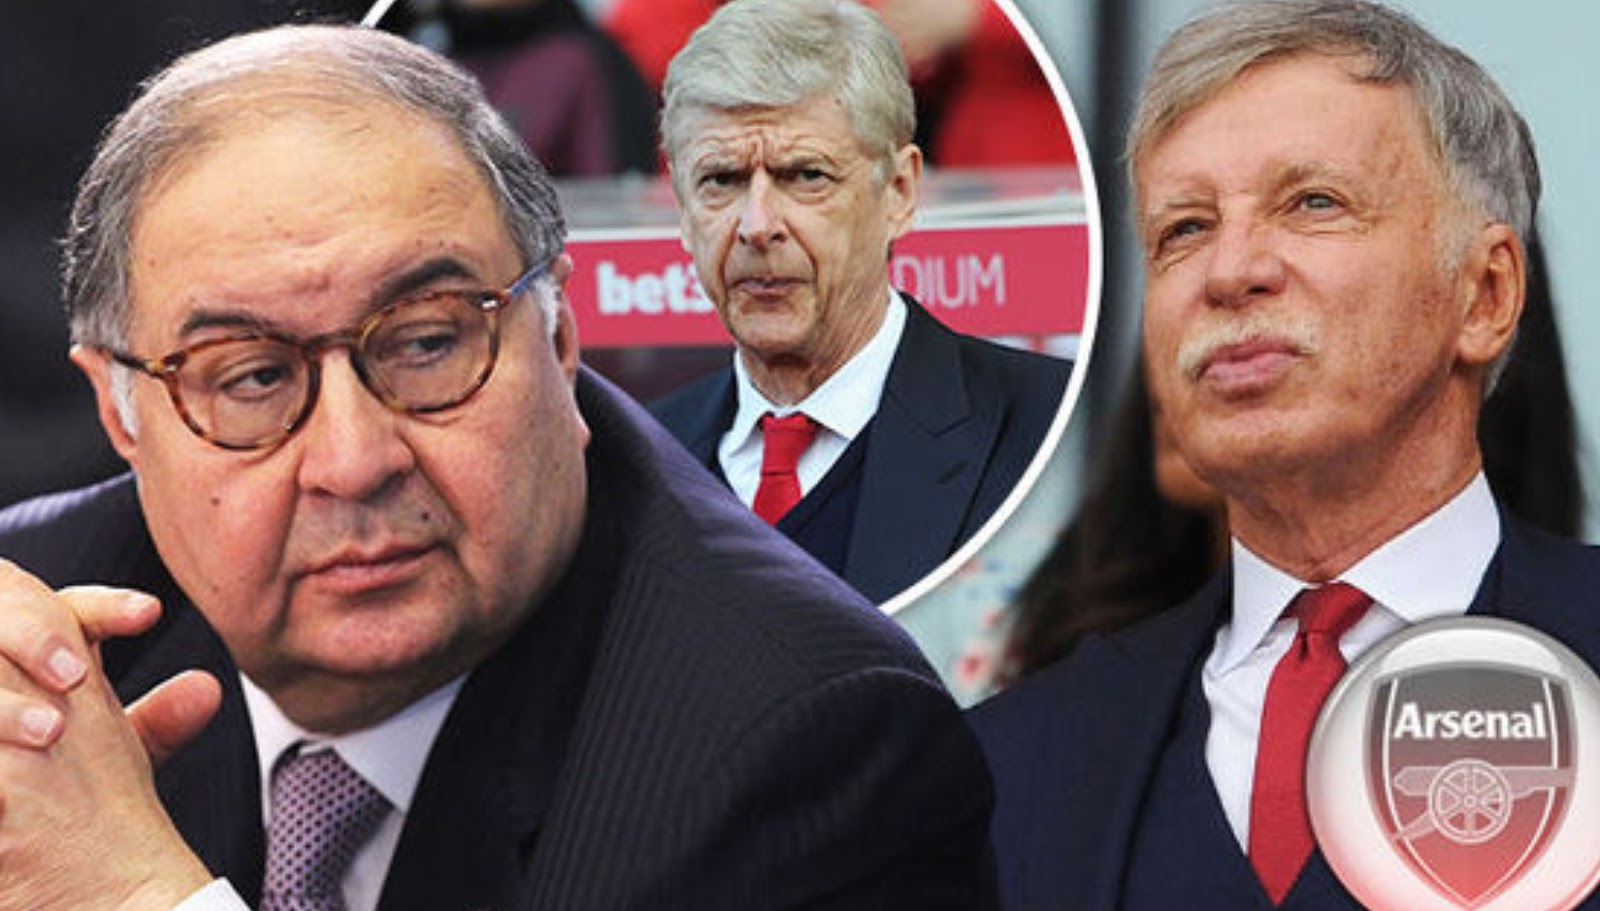 Arsenal club owners are Stan Kroenke & Alisher Usmanov